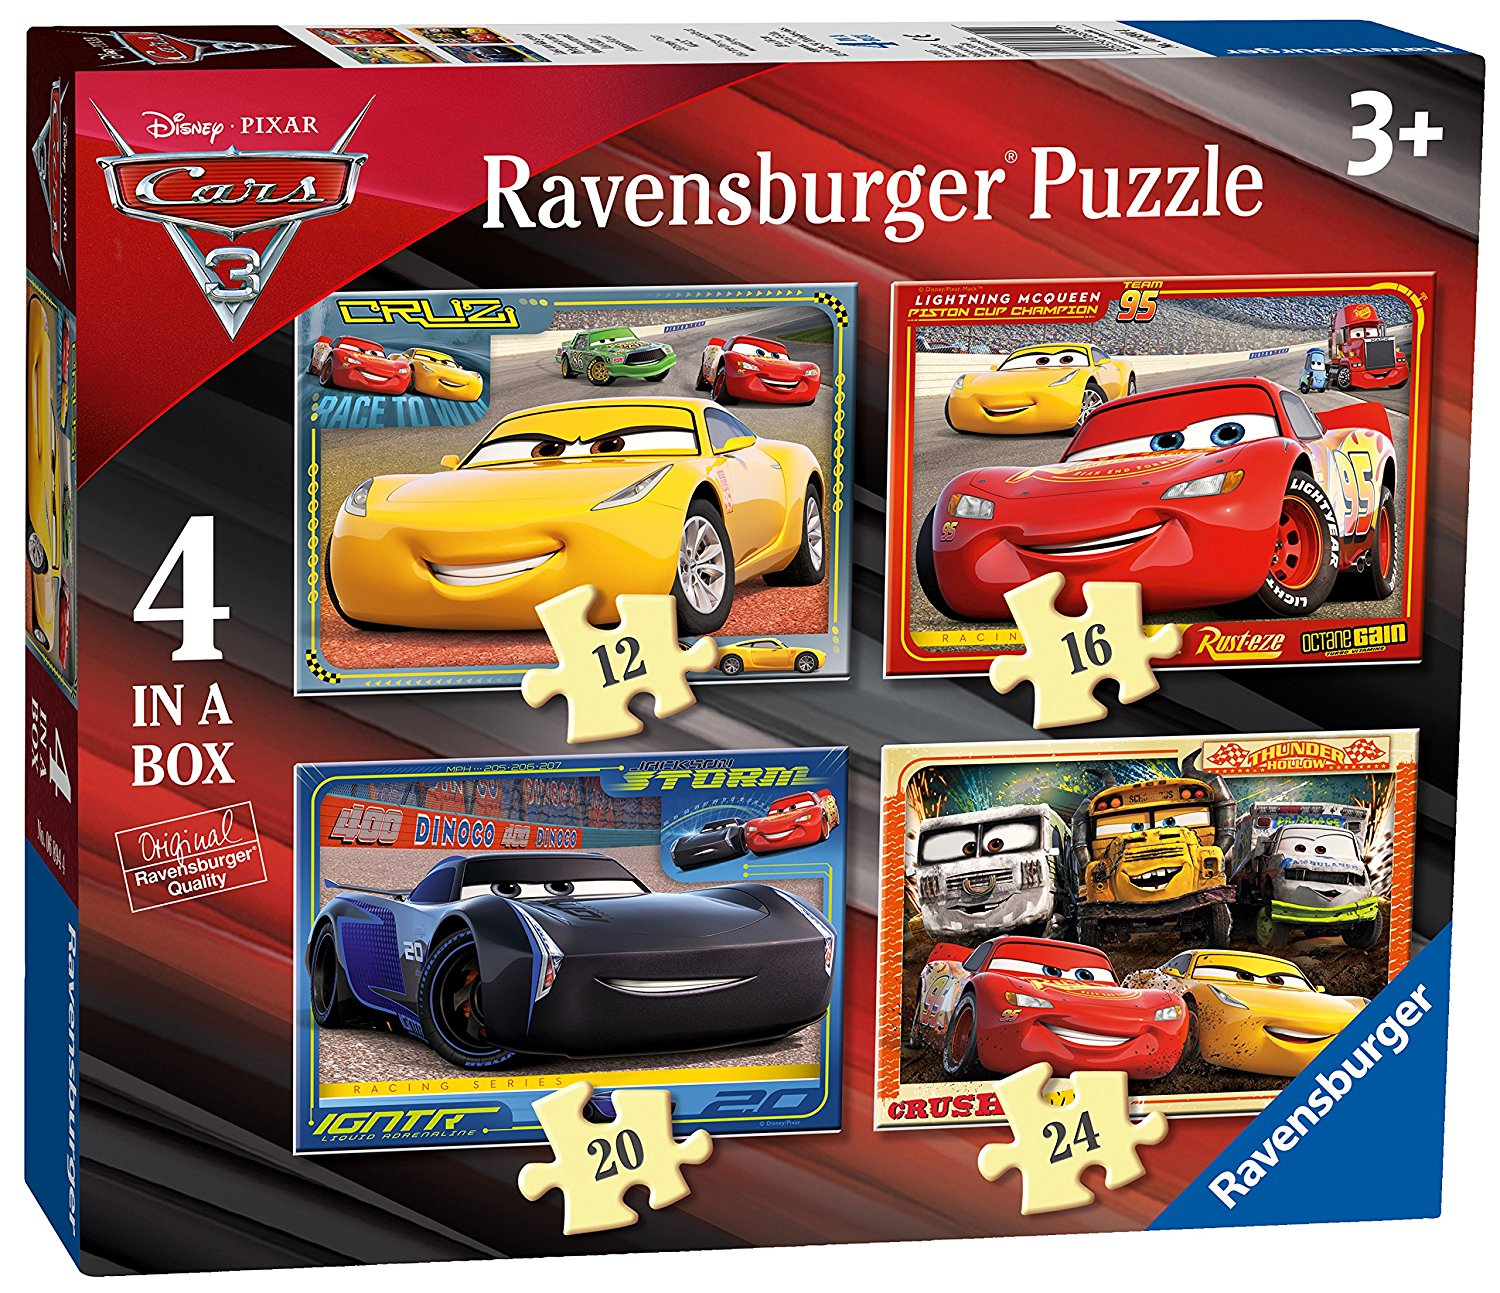 Disney Cars 3, 4 in Box, 12pc, 16pc, 20pc & 24pc